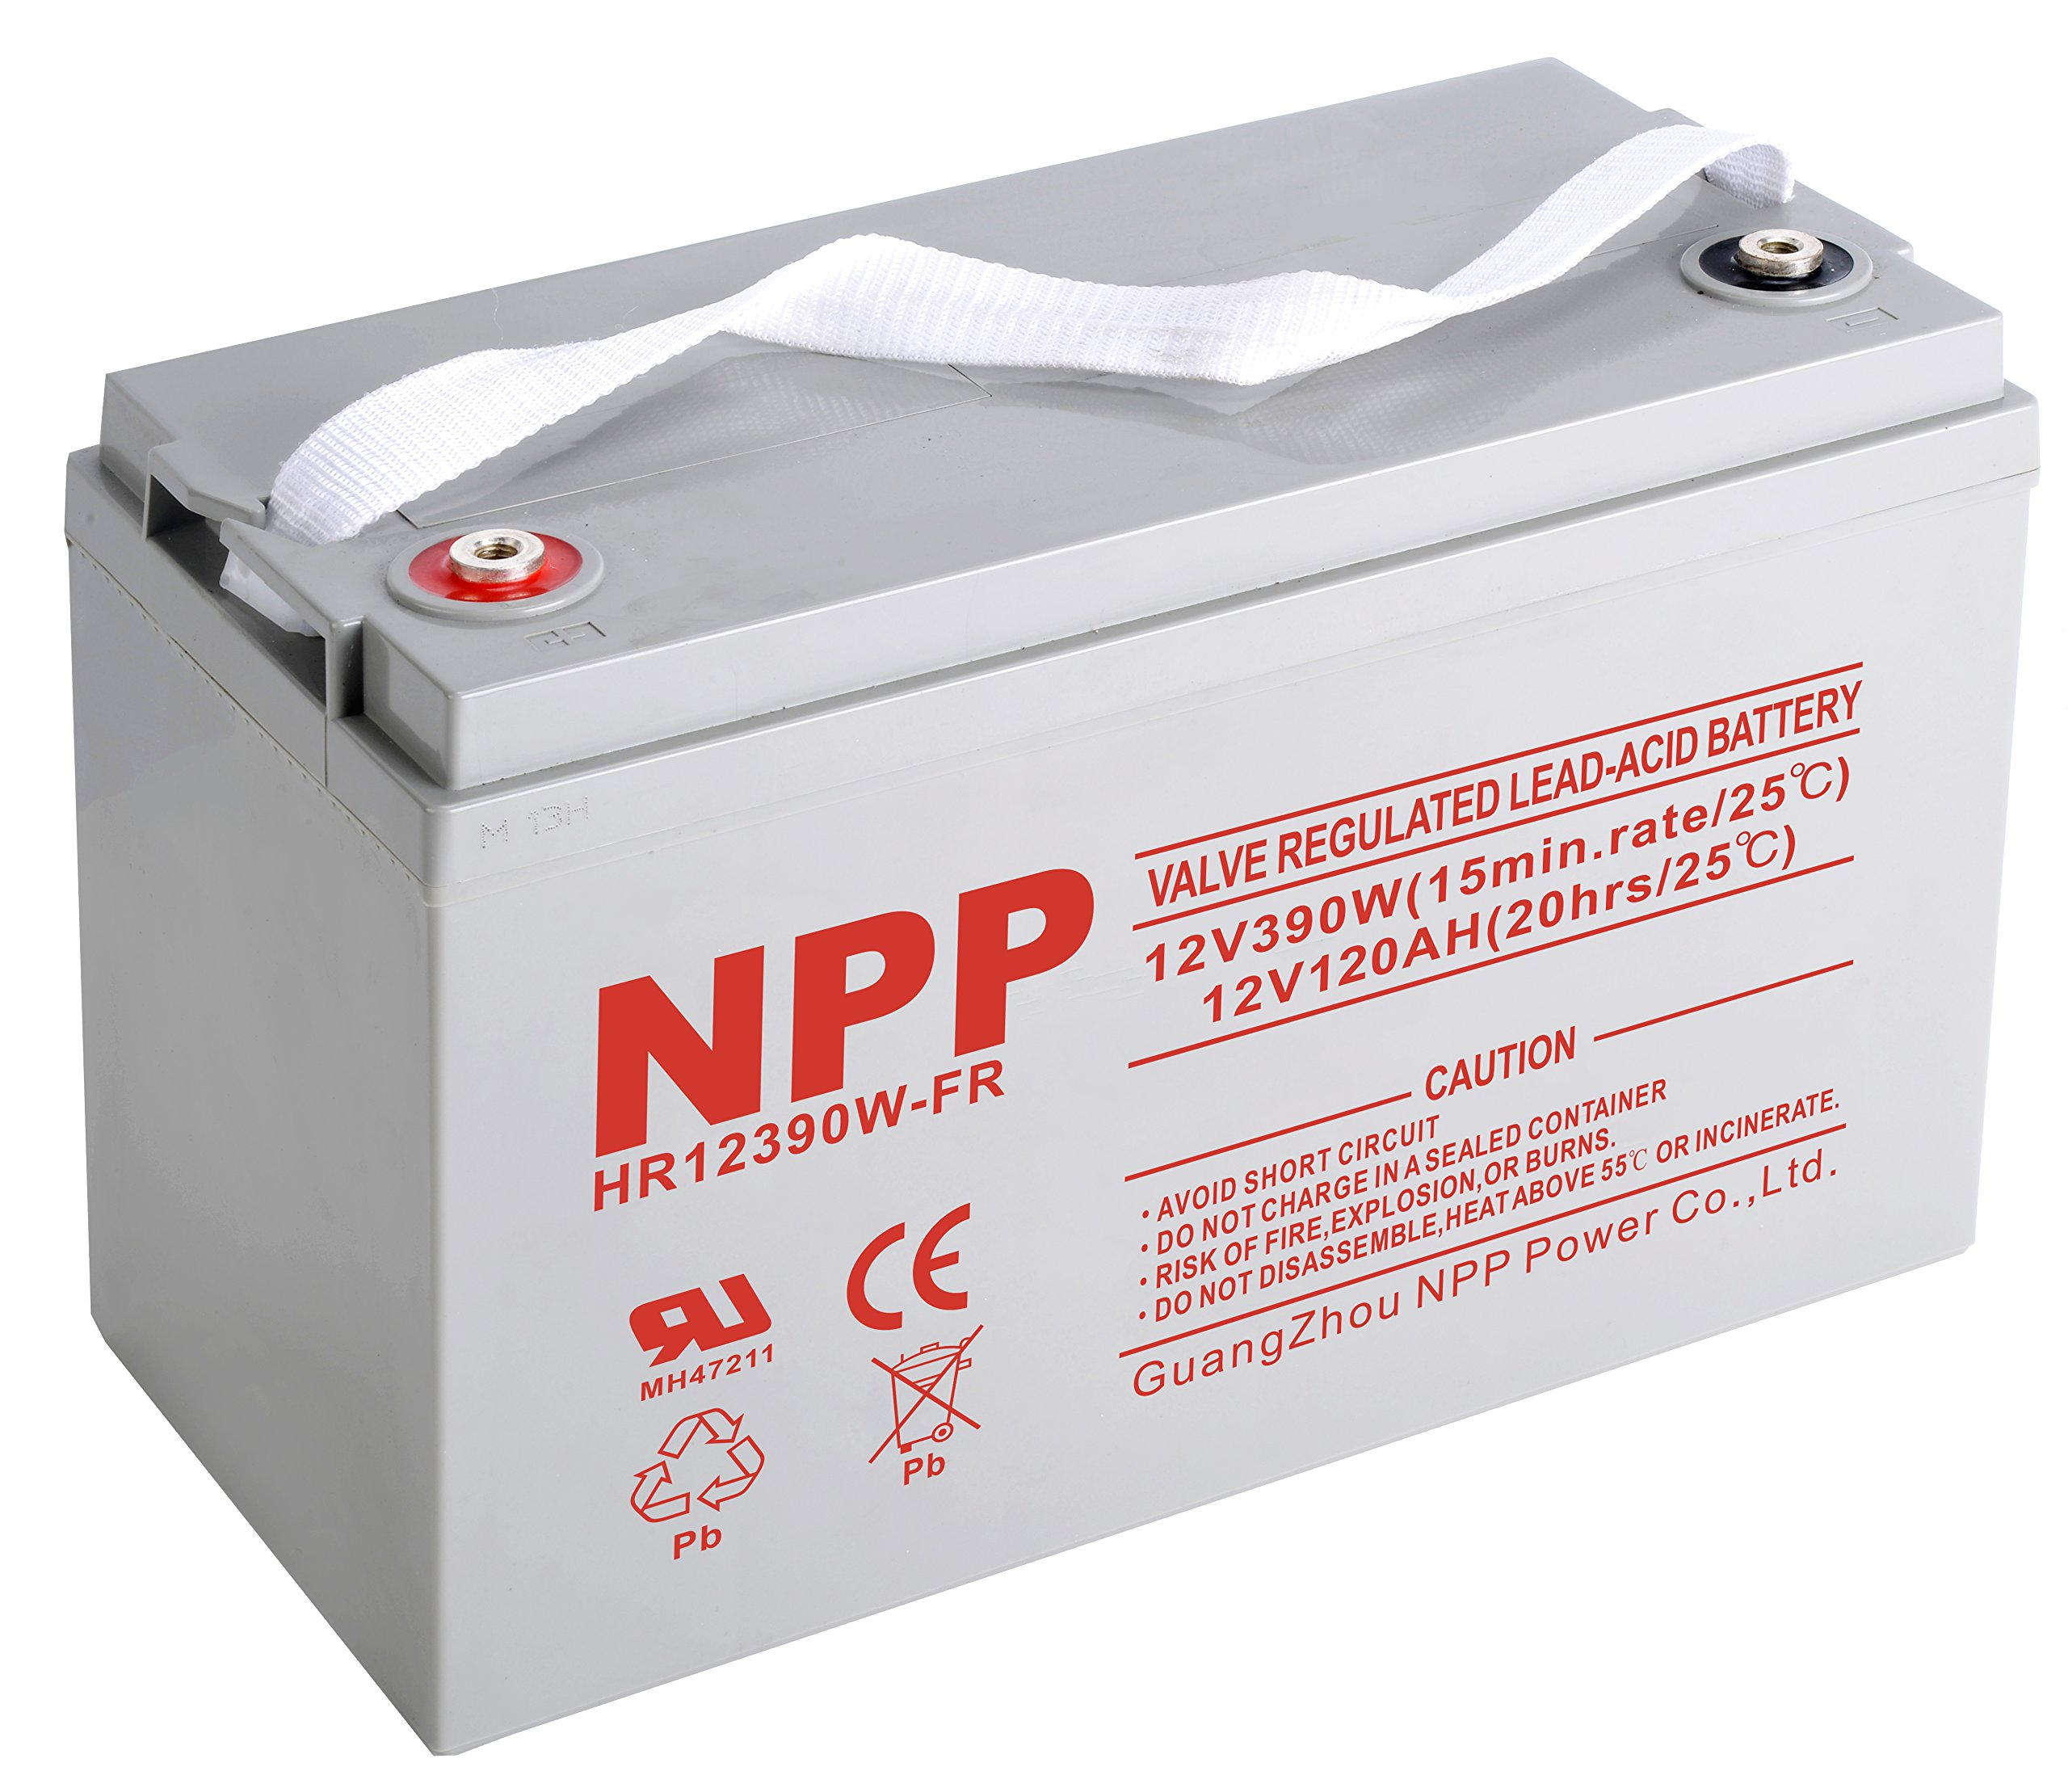 NPPower HR12390W 12V 390W, Flame Retardant 12V 120Ah,12Volt 120amp Sealed Lead Acid Rechargeable Battery with Button Style Terminals by NPP